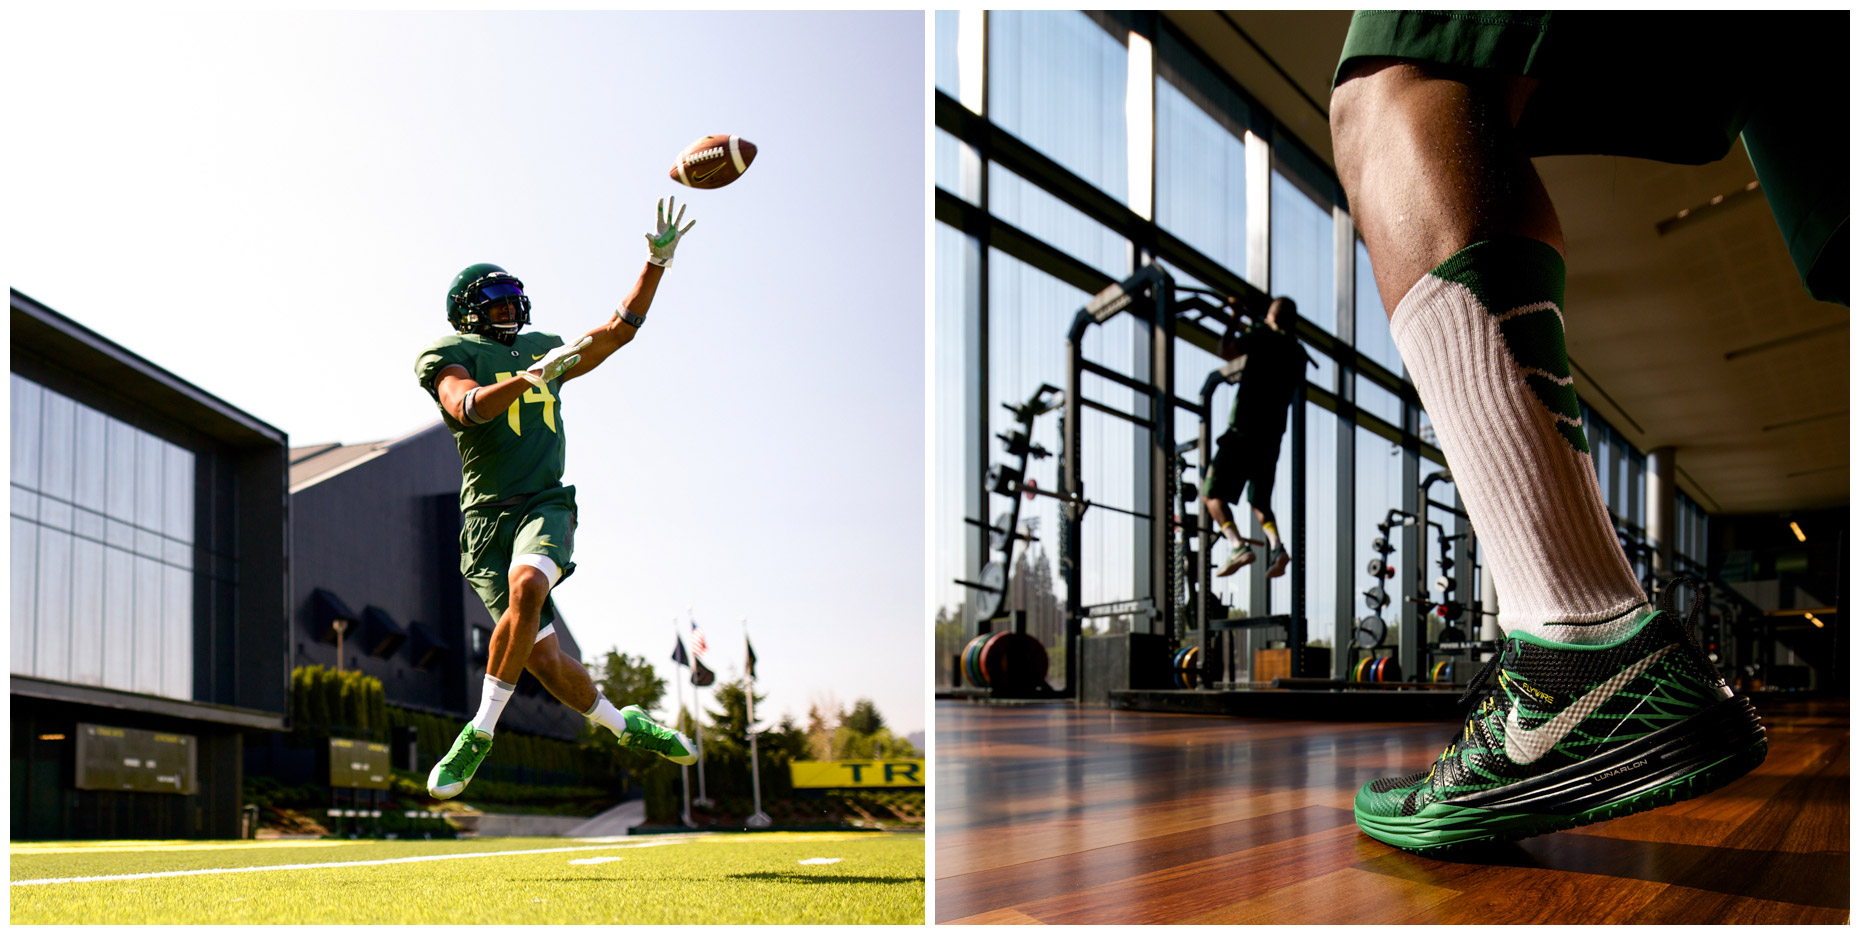 Oregon Ducks | Project for Nike Digital